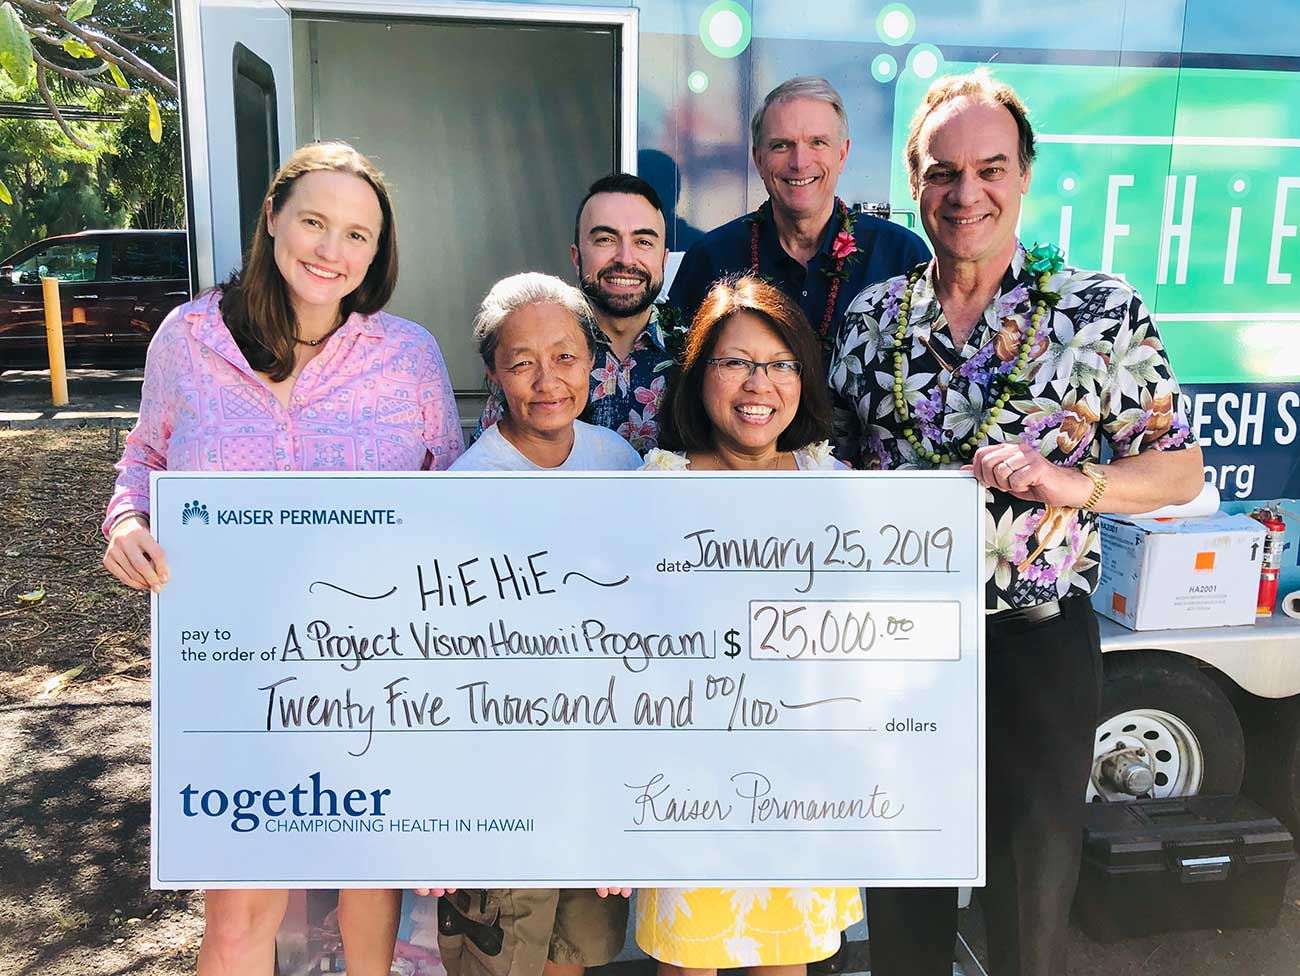 Granting $188,500 to support health in Hawaii